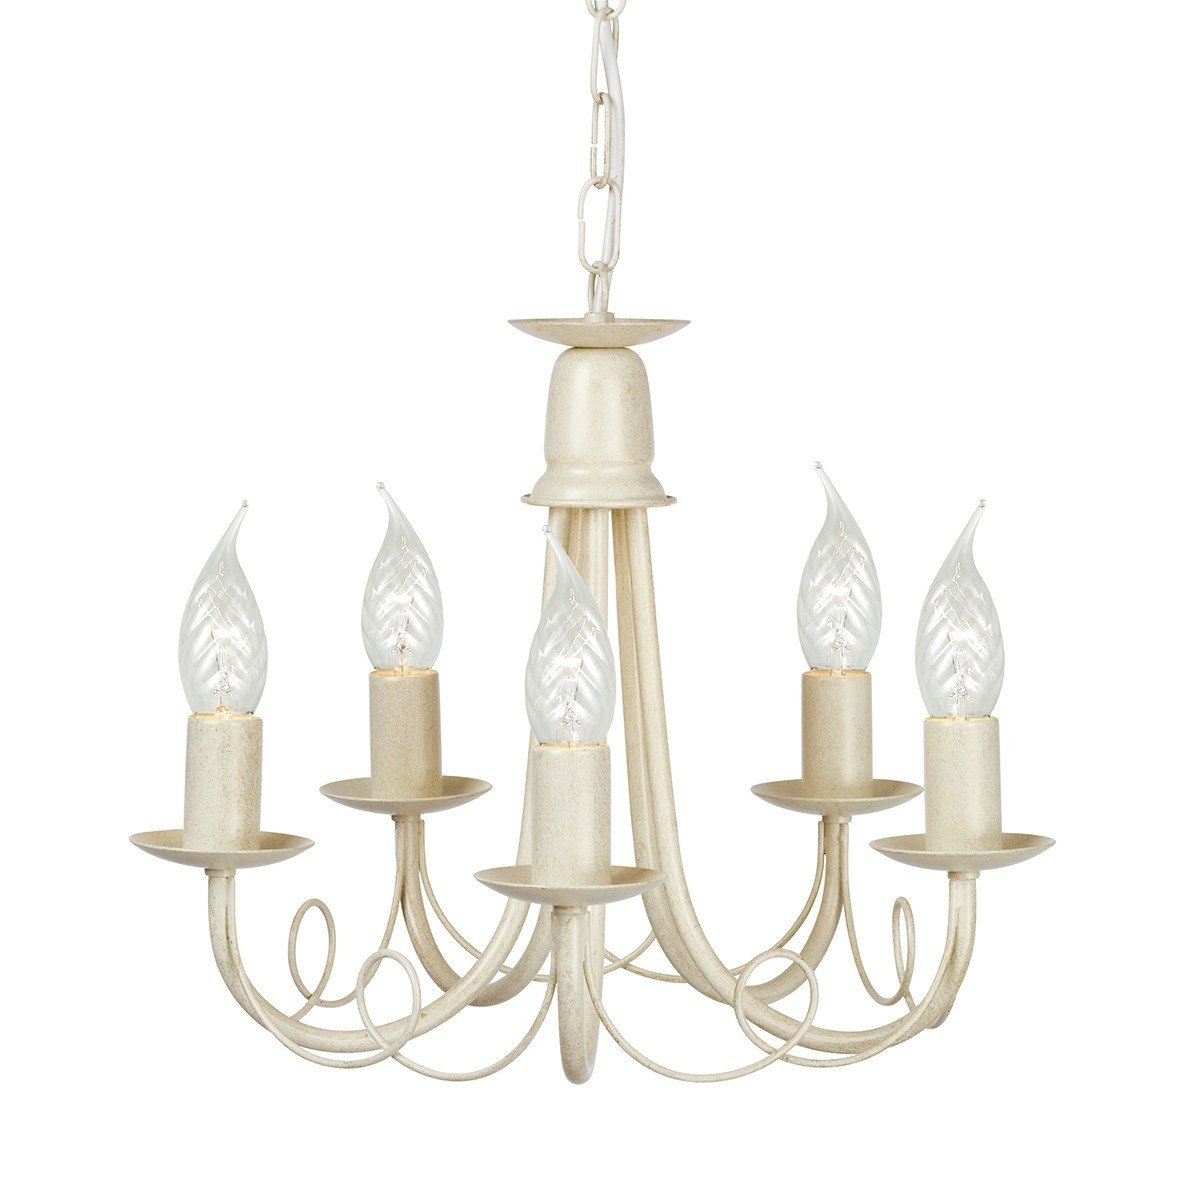 Minster 5 Arm Chandelier - London Lighting - 1